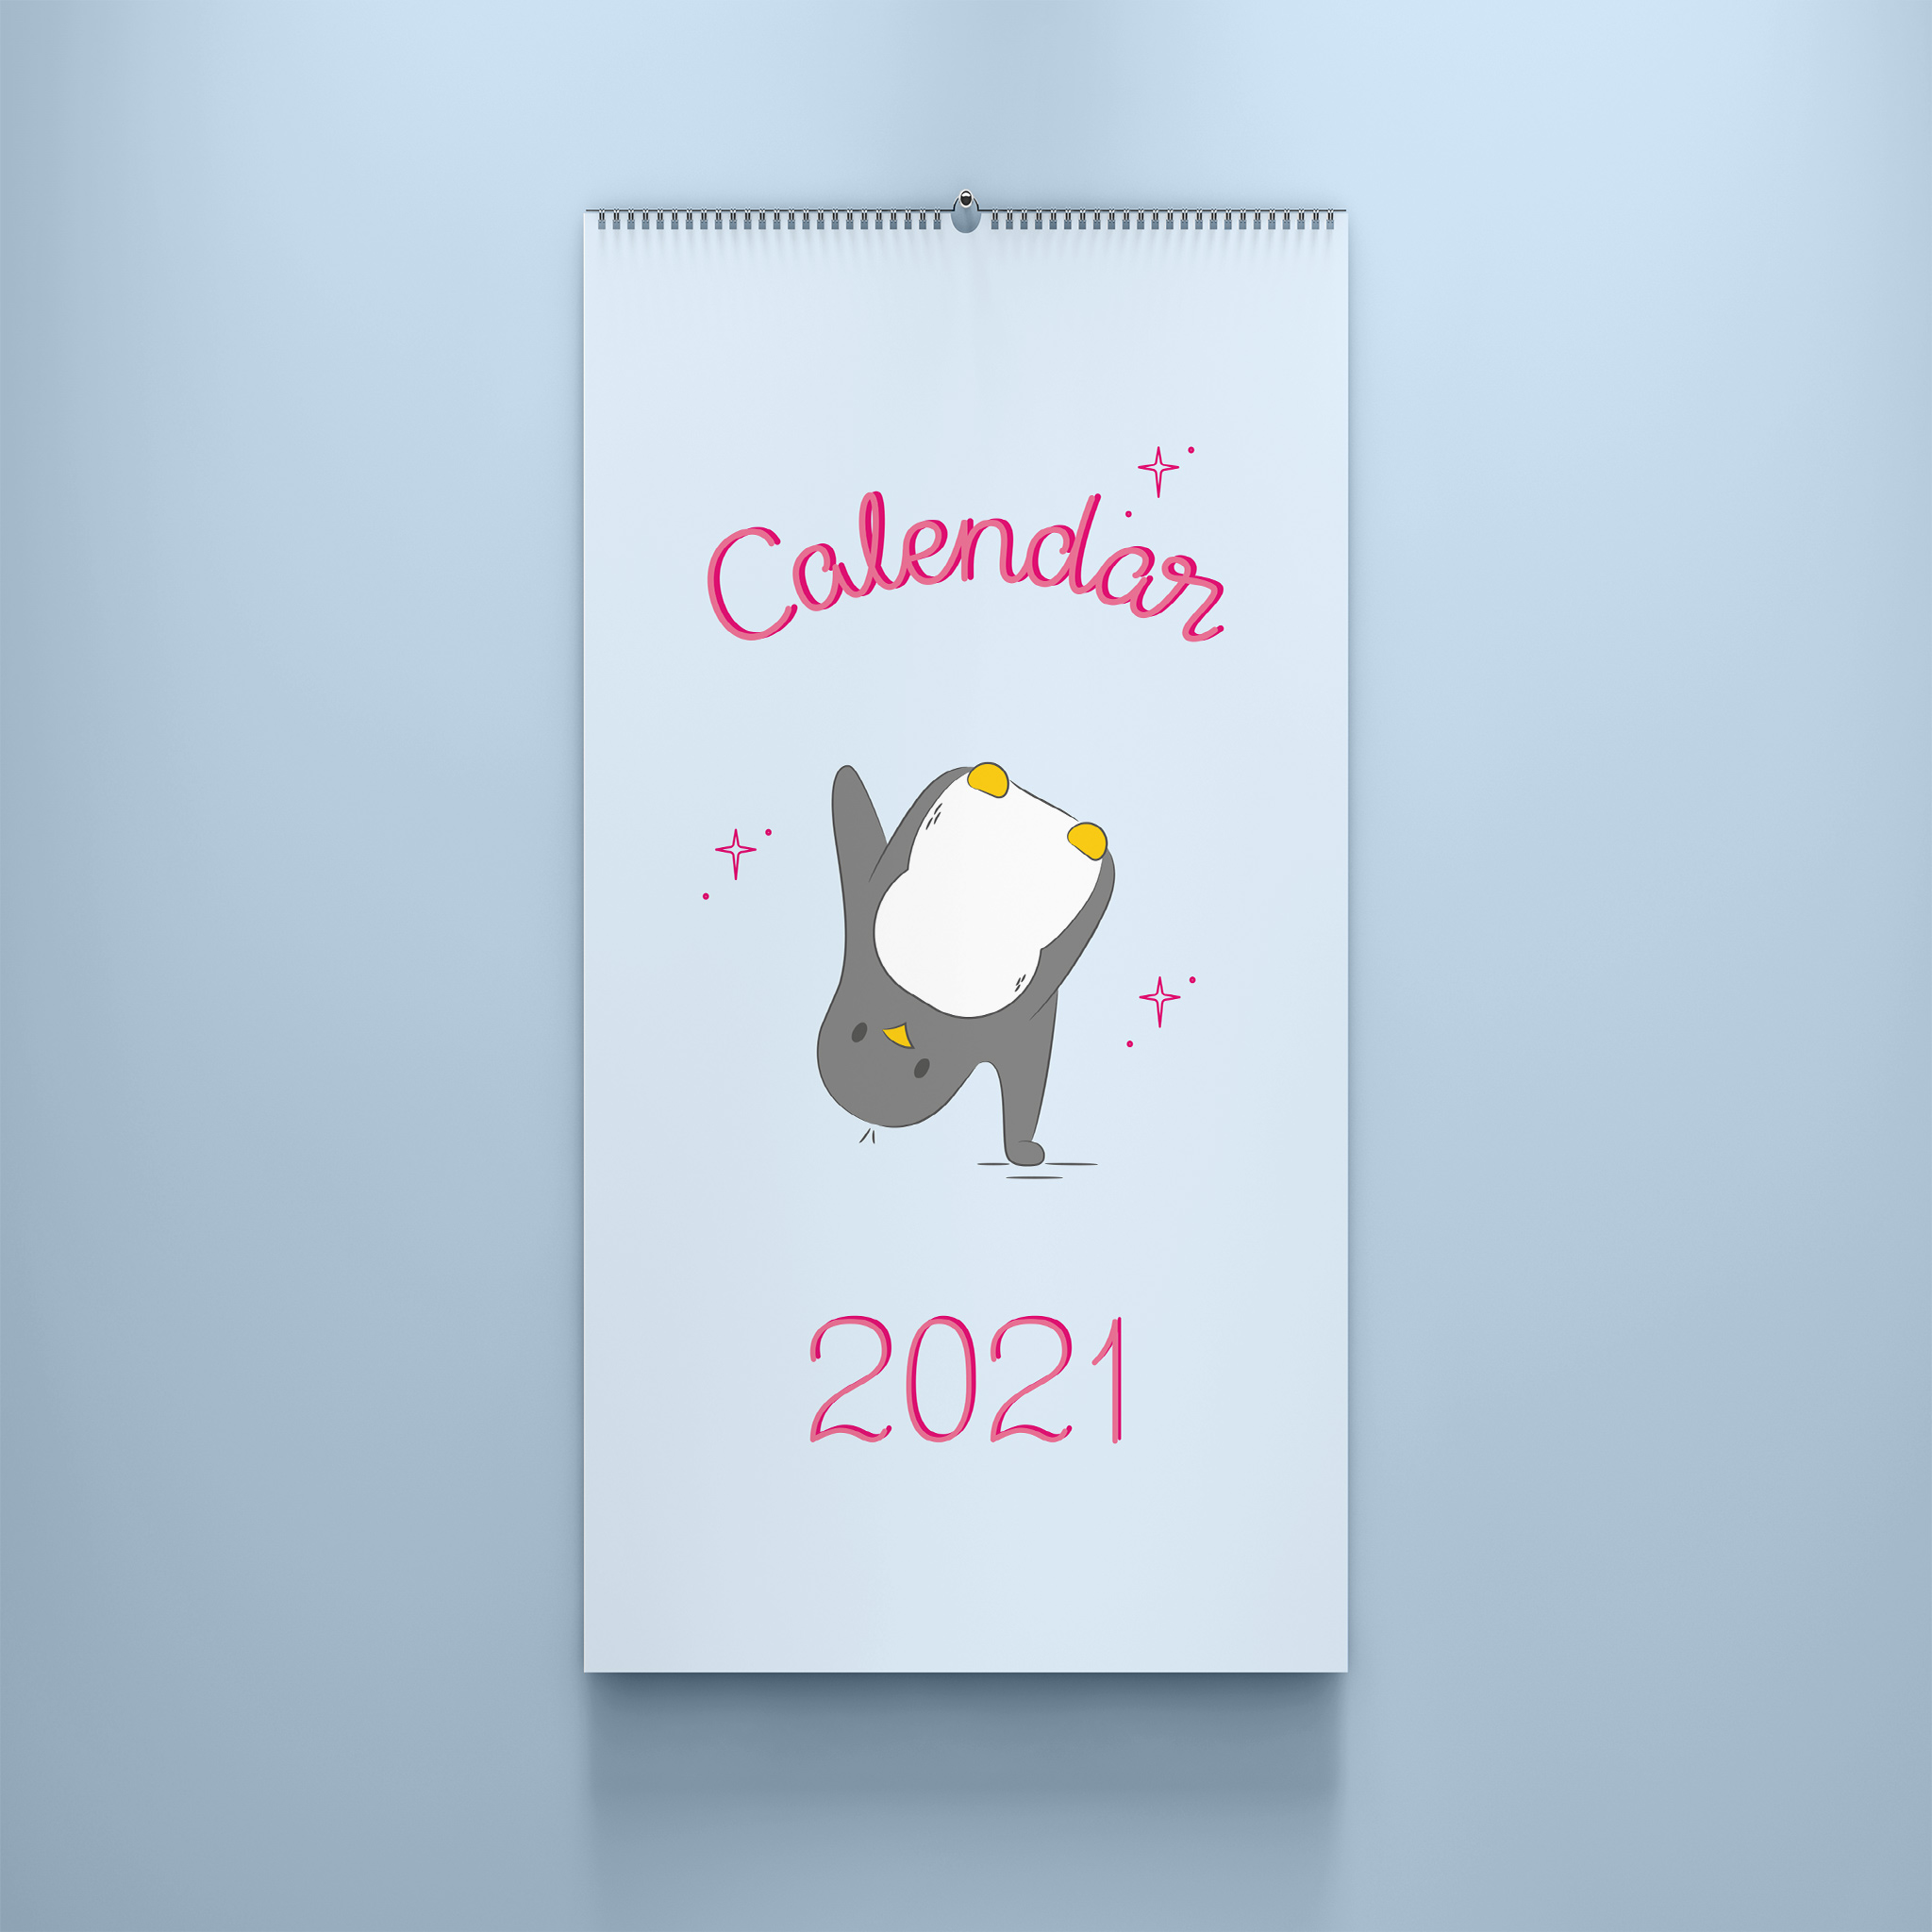 The front page of the 2021 calendar is an illustration of penguin cartwheeling, it has a pale blue background and the words calendar 2021 are hand-lettered in pink. This Calendar is wire bound A4 and is styled against a blue background.